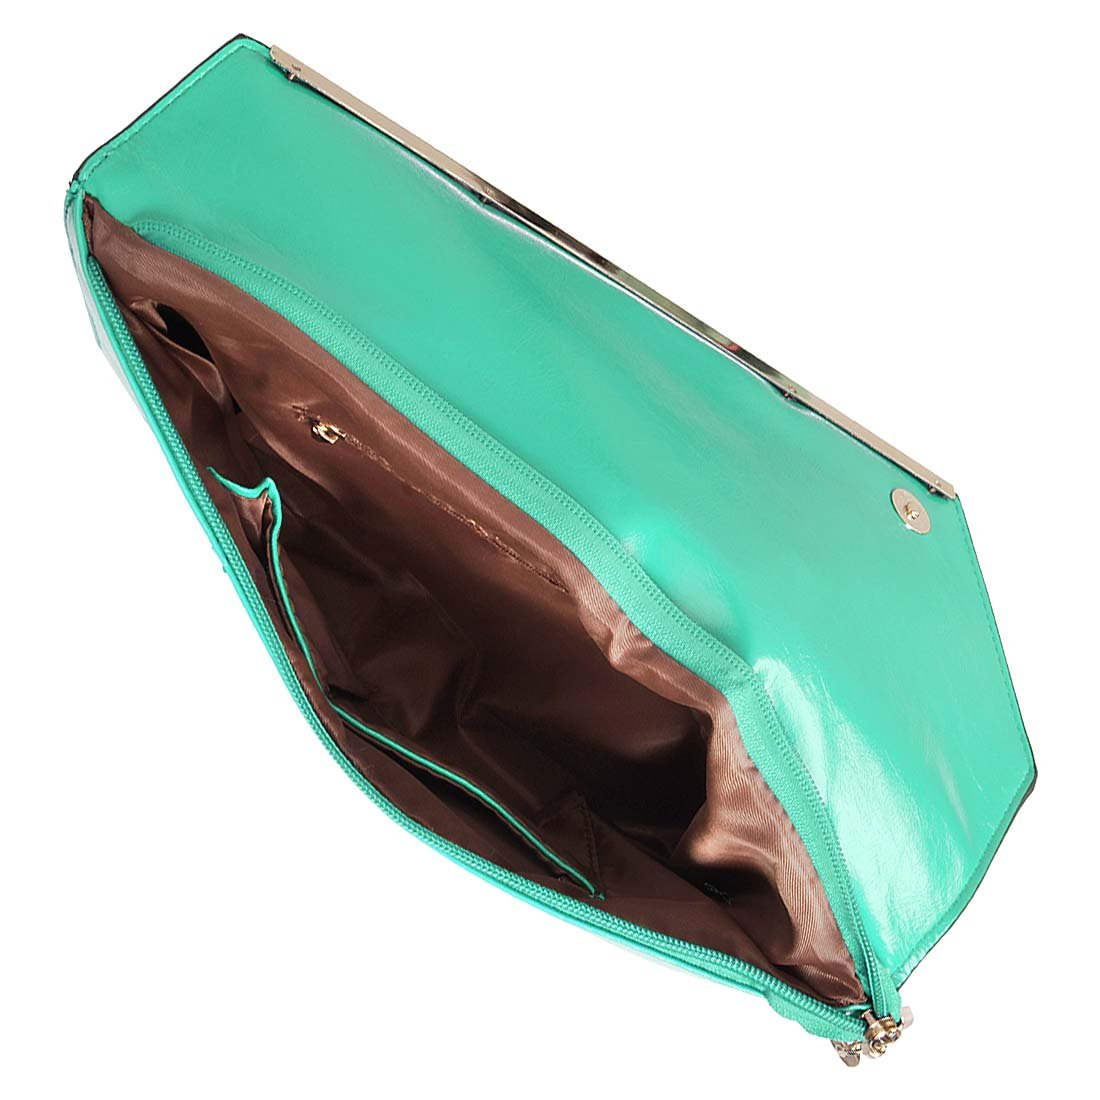 BMC Fashionably Chic Turquoise Faux Leather Gold Metal Accent Envelope Style Statement Clutch by b.m.c (Image #7)